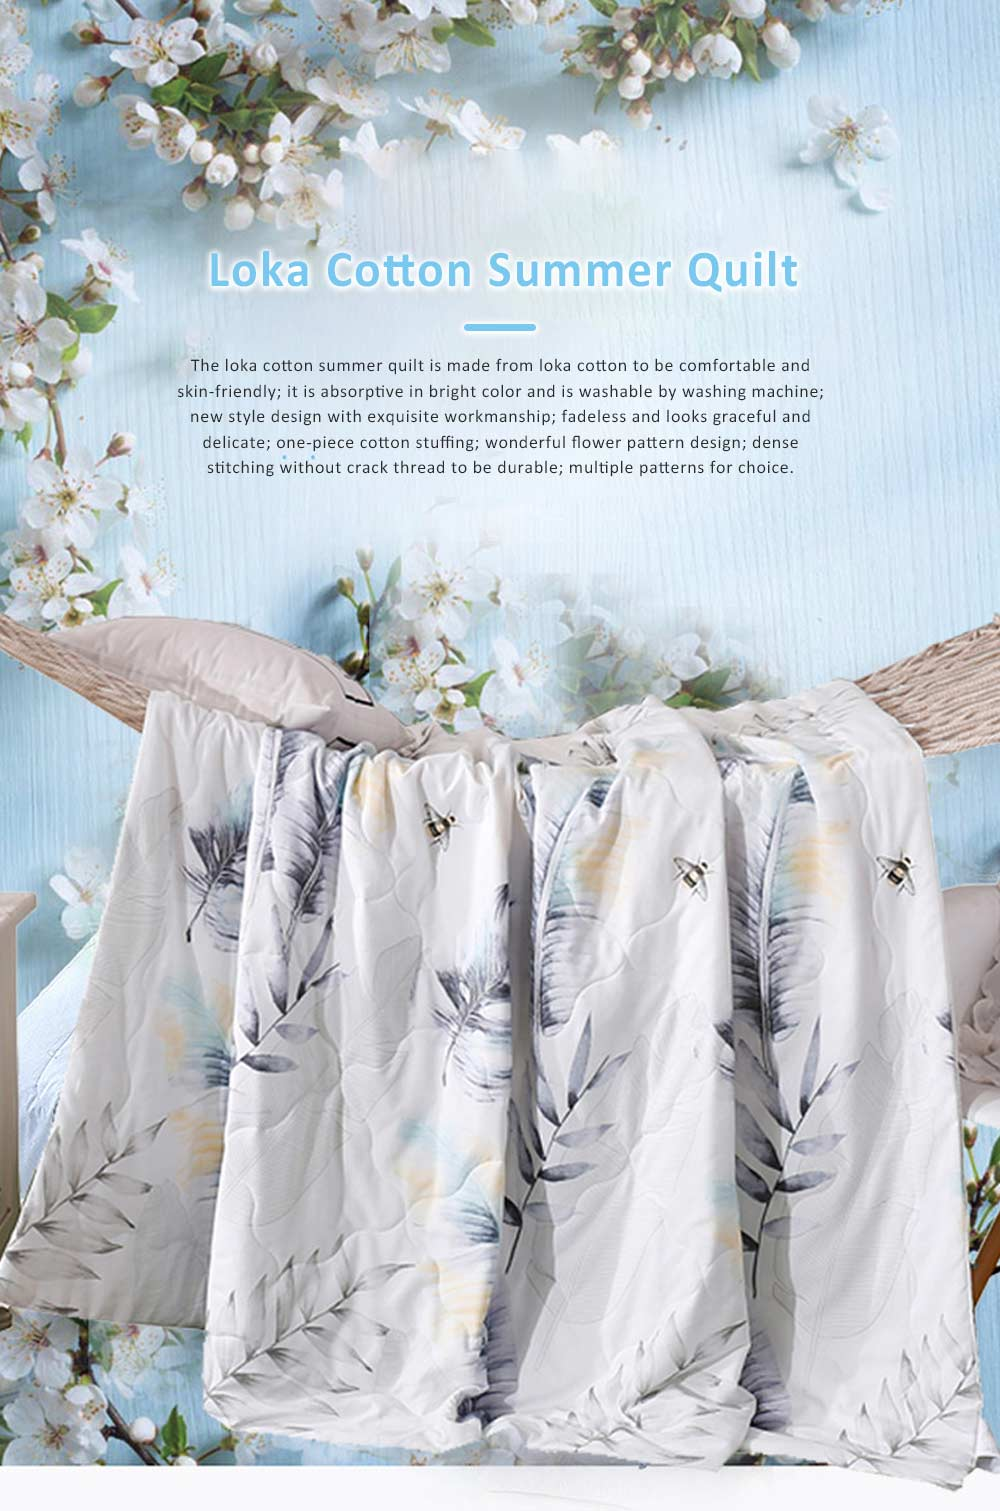 Washable Breathable Cotton Summer Quilt with Fadeless Printing, Skin-friendly Blankets for Air Conditioning Summer Quilt 0